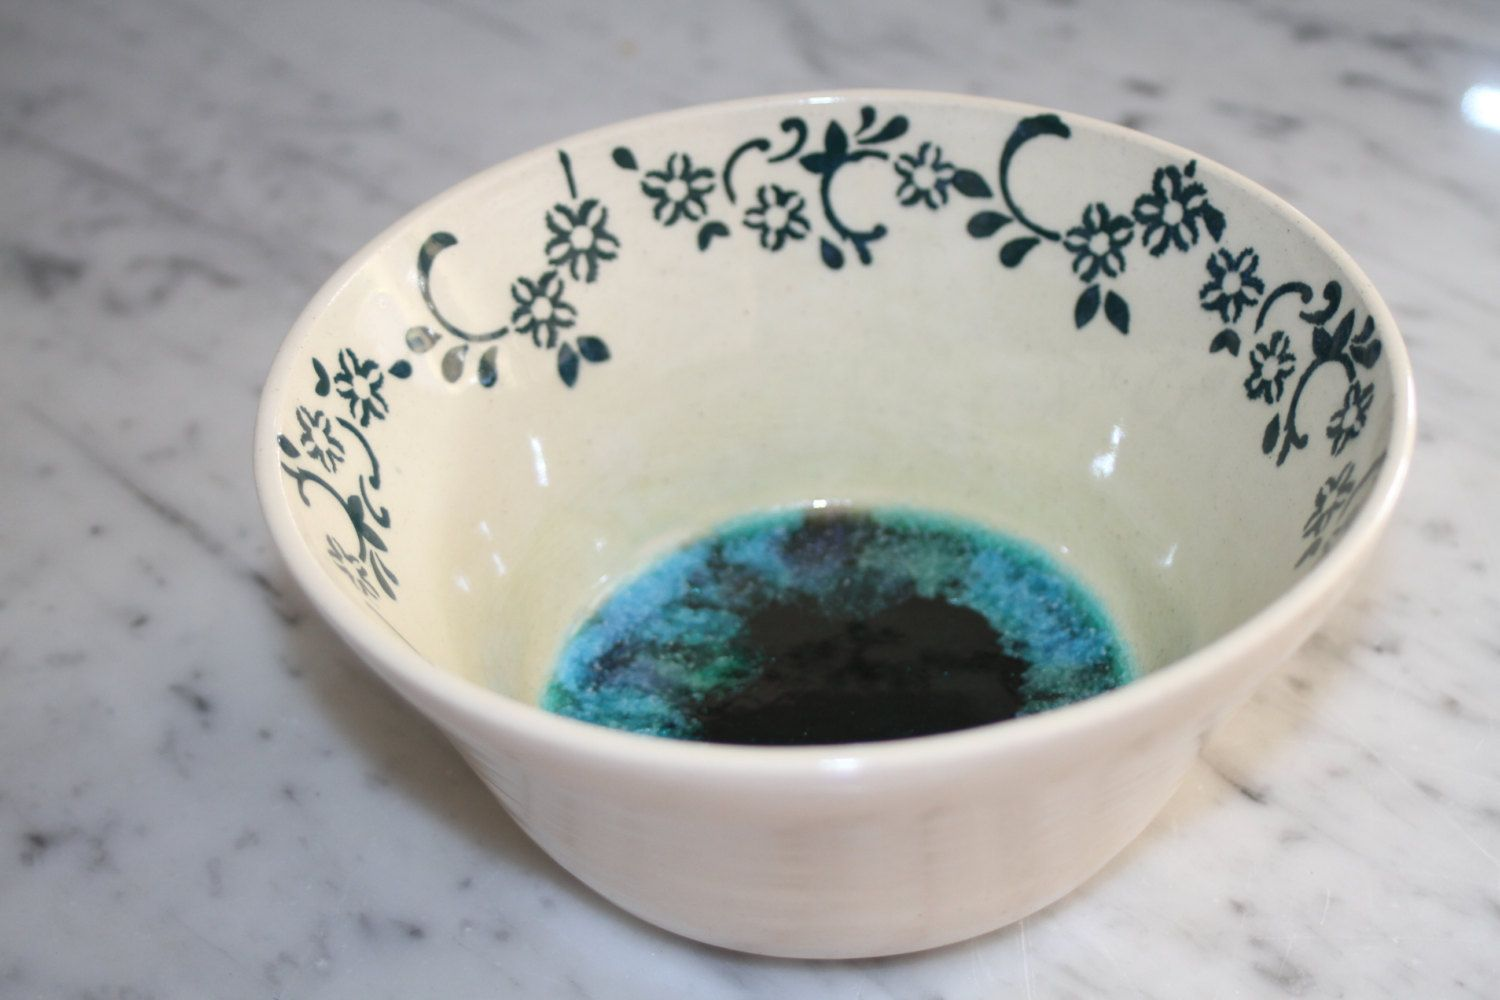 Decorative Ceramic Bowl Handmade Bowl Decorative Ceramic Bowl With Glass Bottom Home Decor